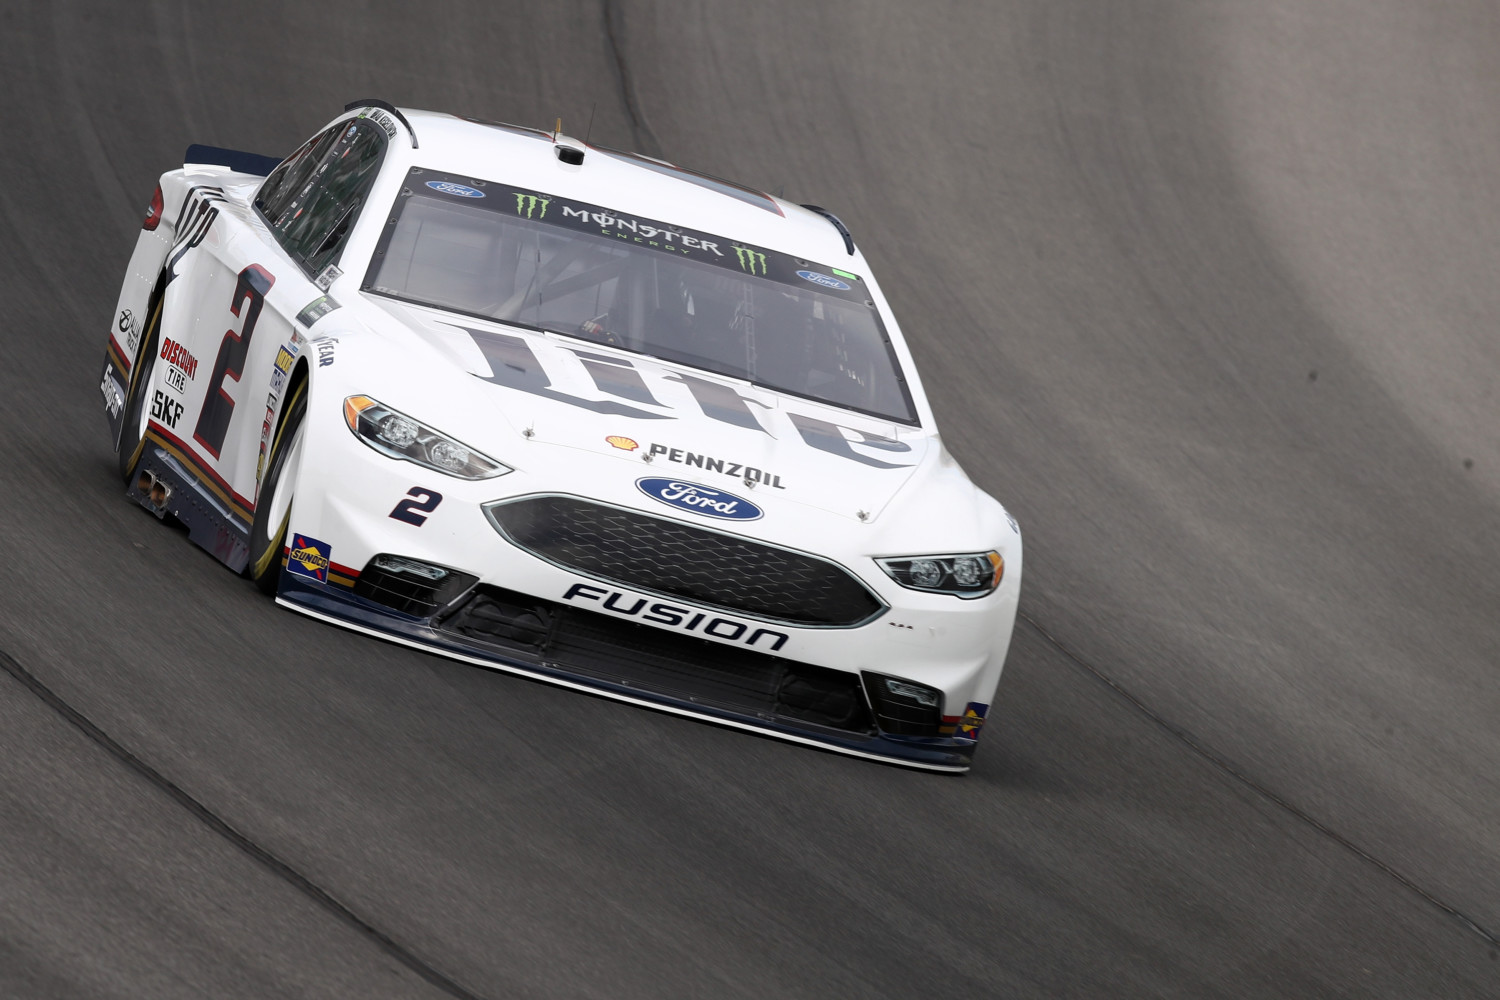 Manufacturer Wars Heat Up After Keselowski's Comments at Michigan